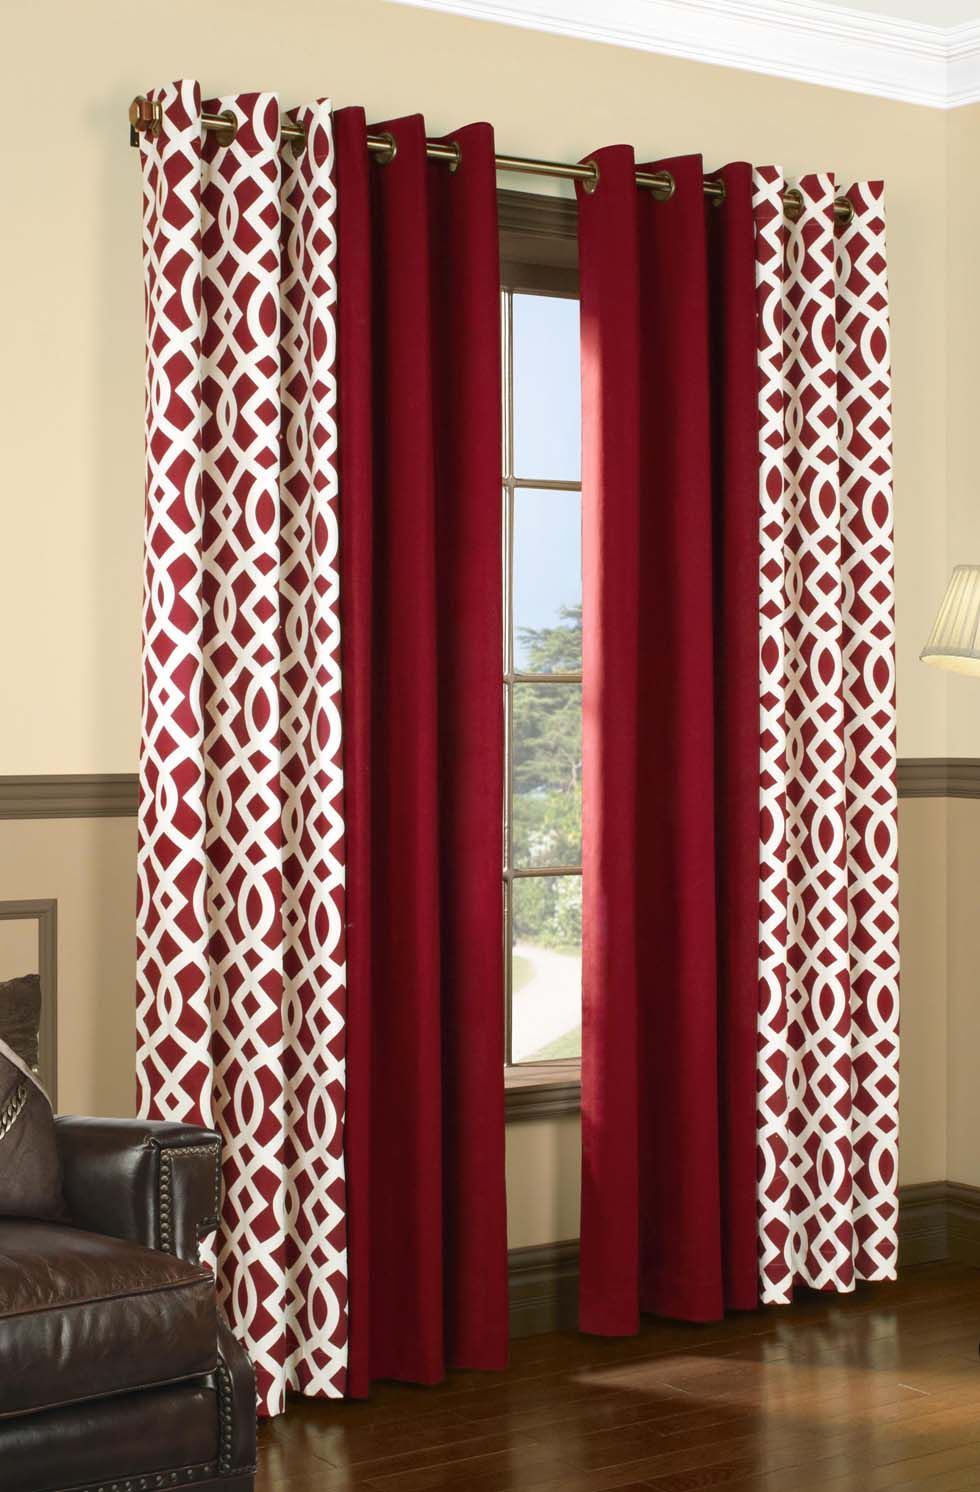 20 Hottest Curtain Designs For 2017 Home Should Always Be The Place Where You Start Feeling Fine Again A Curtains Living Room Curtain Designs Curtains Living